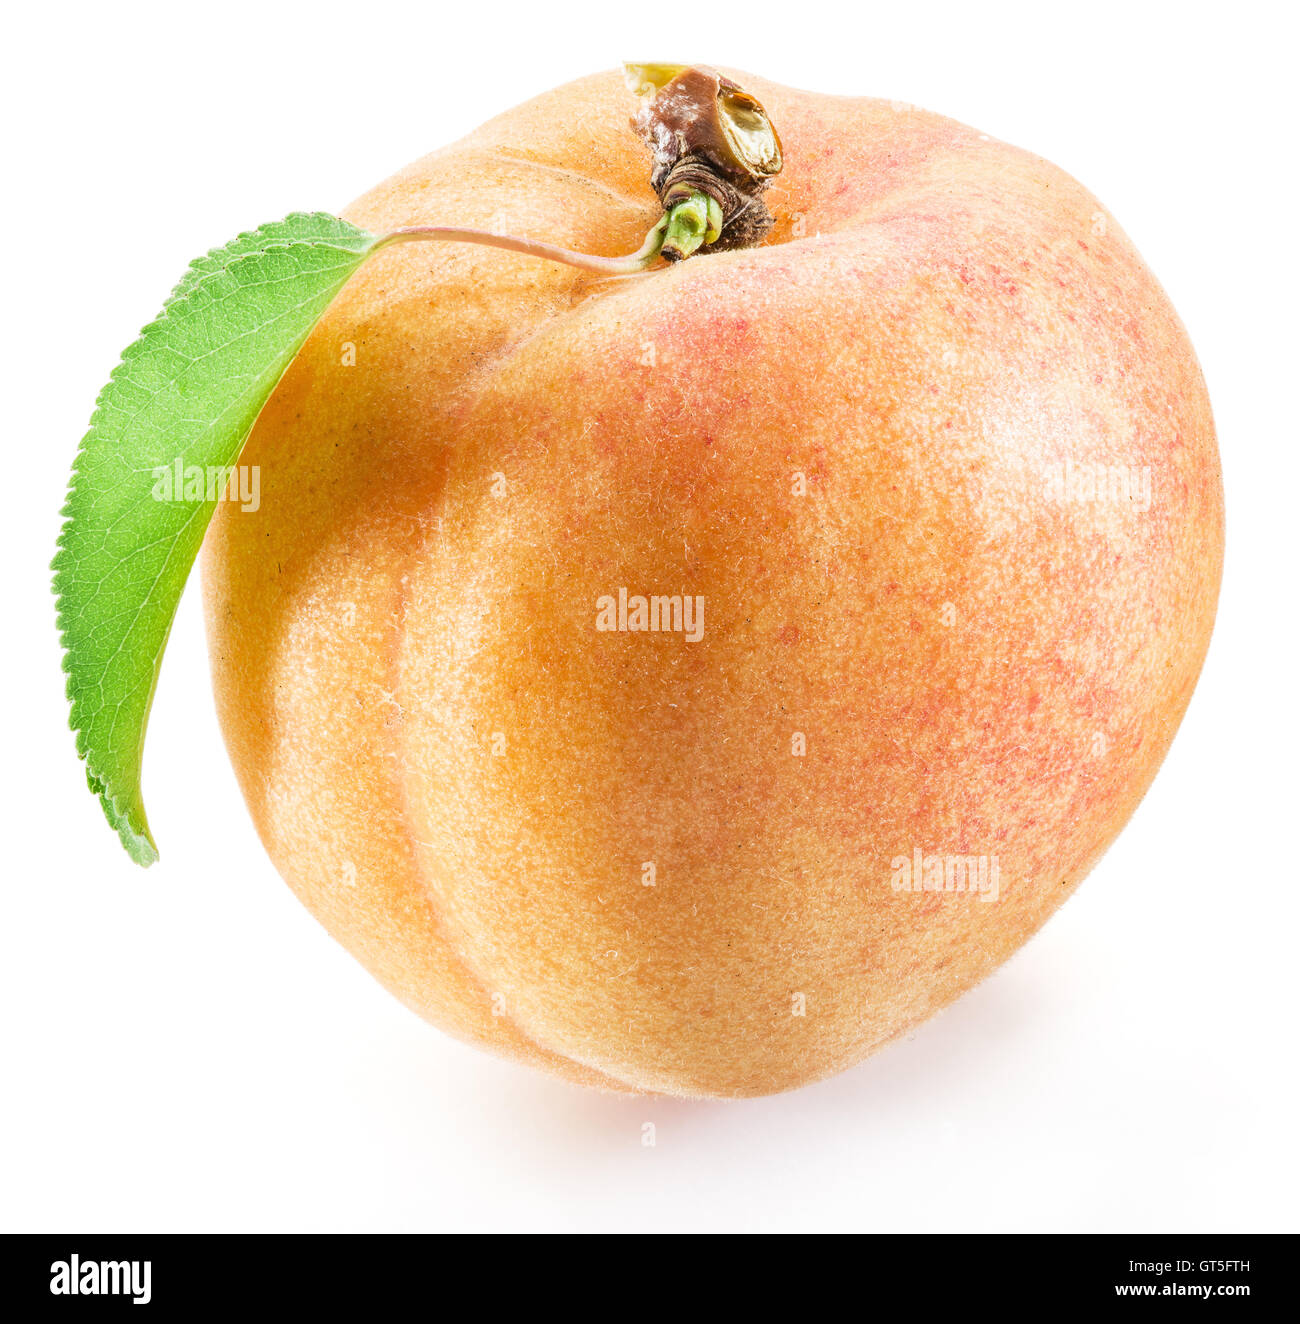 Apricot fruit with leaf on the white background. - Stock Image